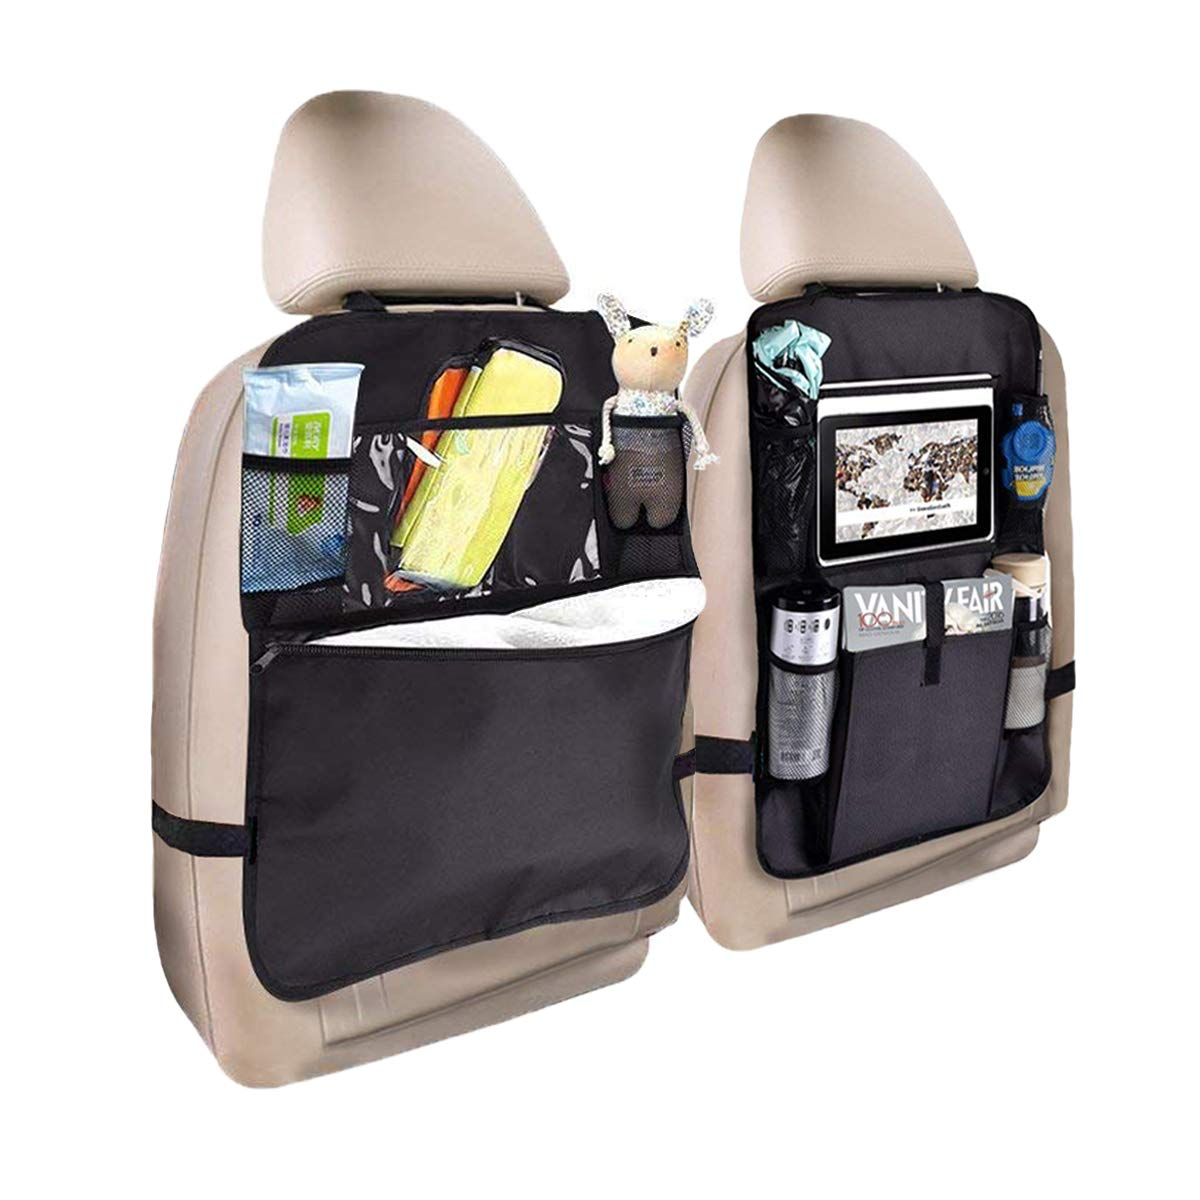 Standard Car Seat Back Organizer Kick Mats Back of Seat Protectors with Clear Window 10' Holder Compatible with Ipad and Multi-Pocket Travel Storage Bag Organizer-2pack OGRUI